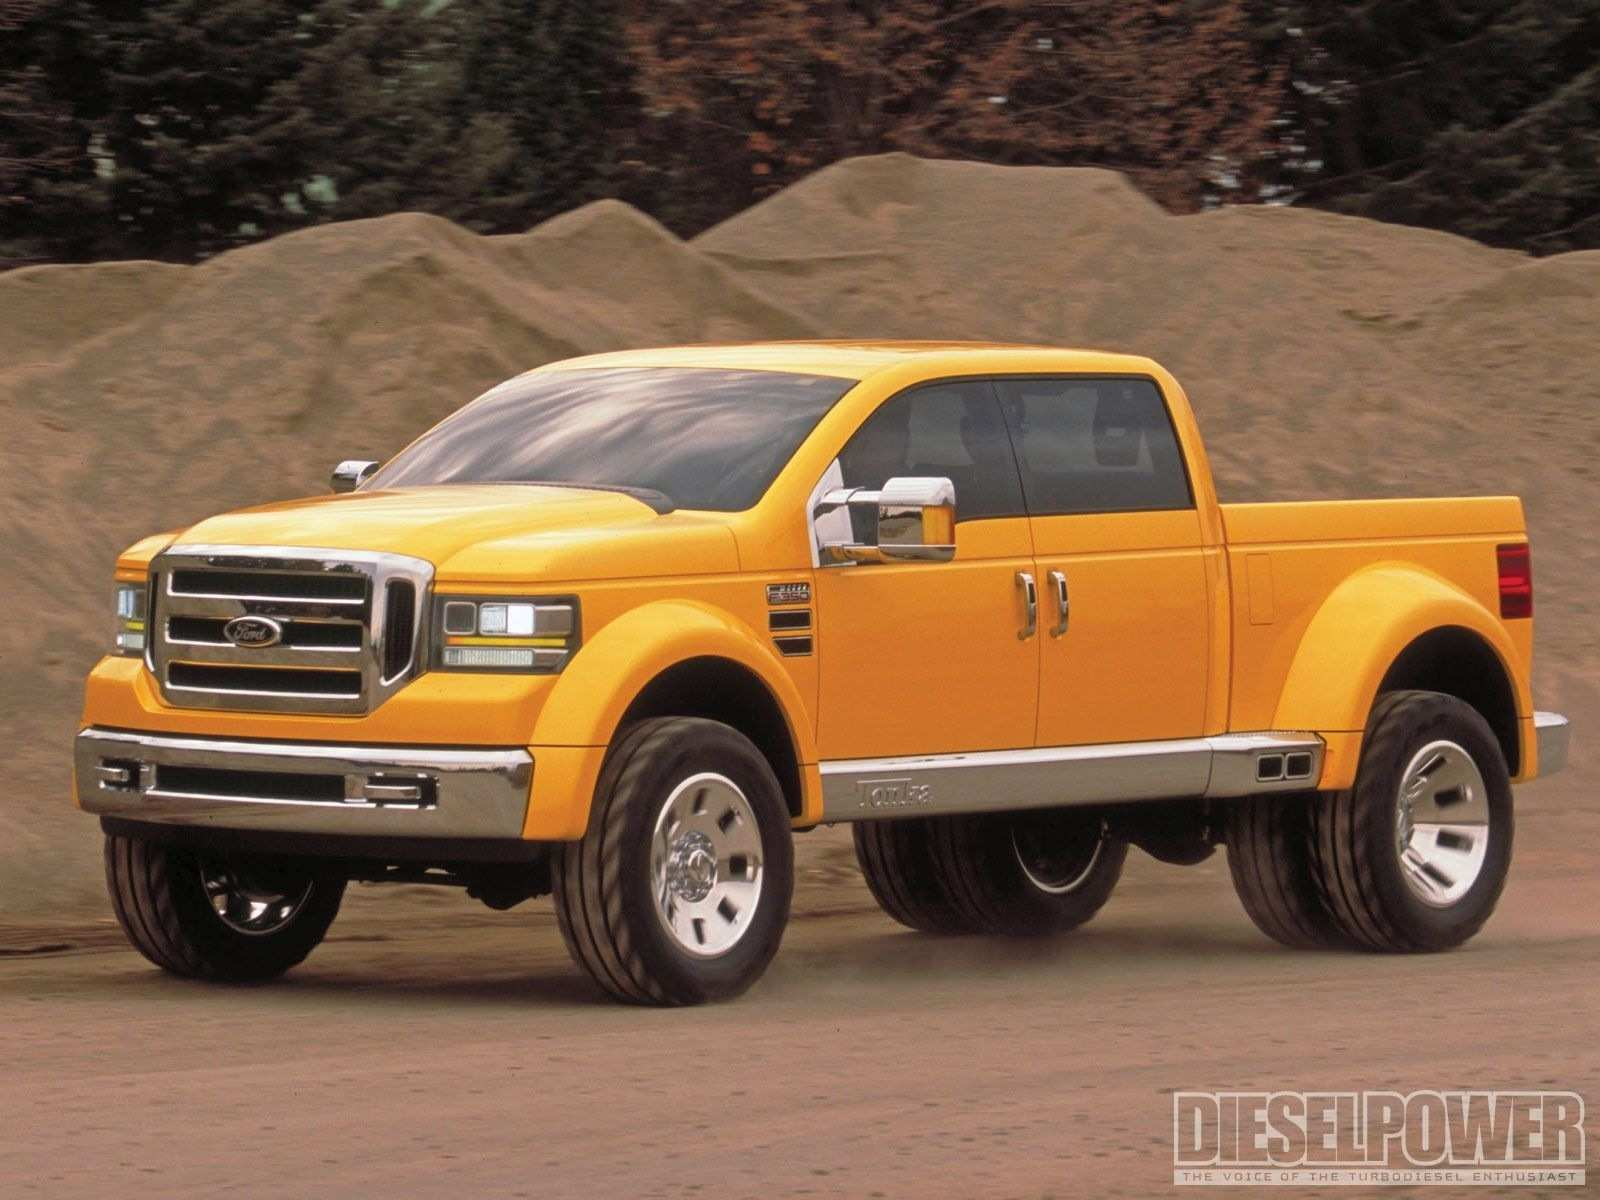 63 Best Review 2020 Ford F350 Diesel Model for 2020 Ford F350 Diesel